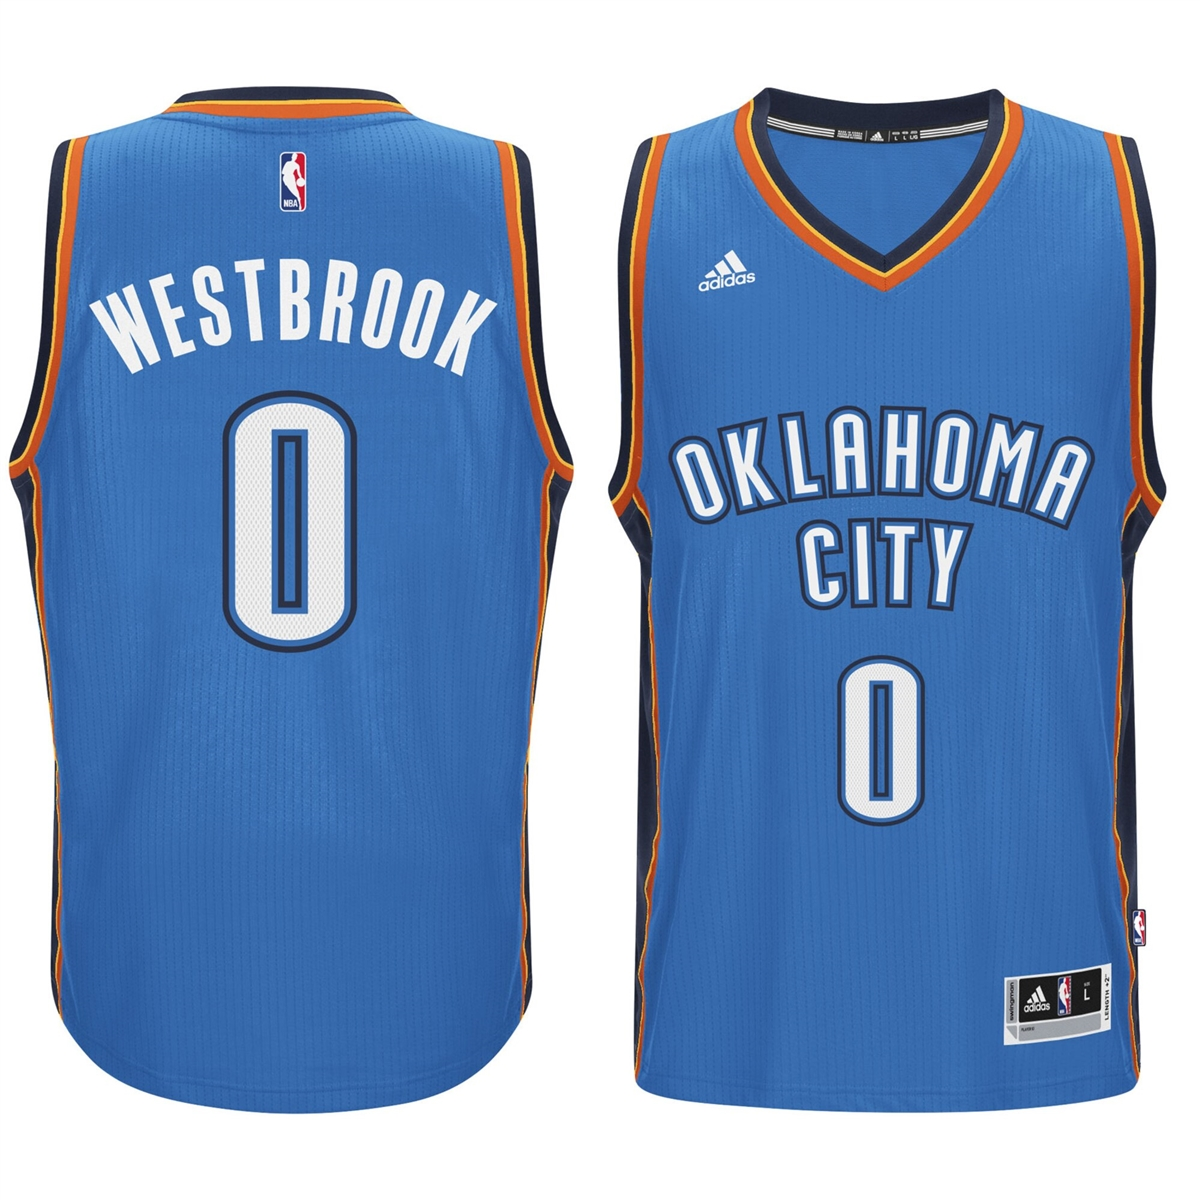 low priced 777bd afef3 Oklahoma City Thunder Jersey #0 Westbrook